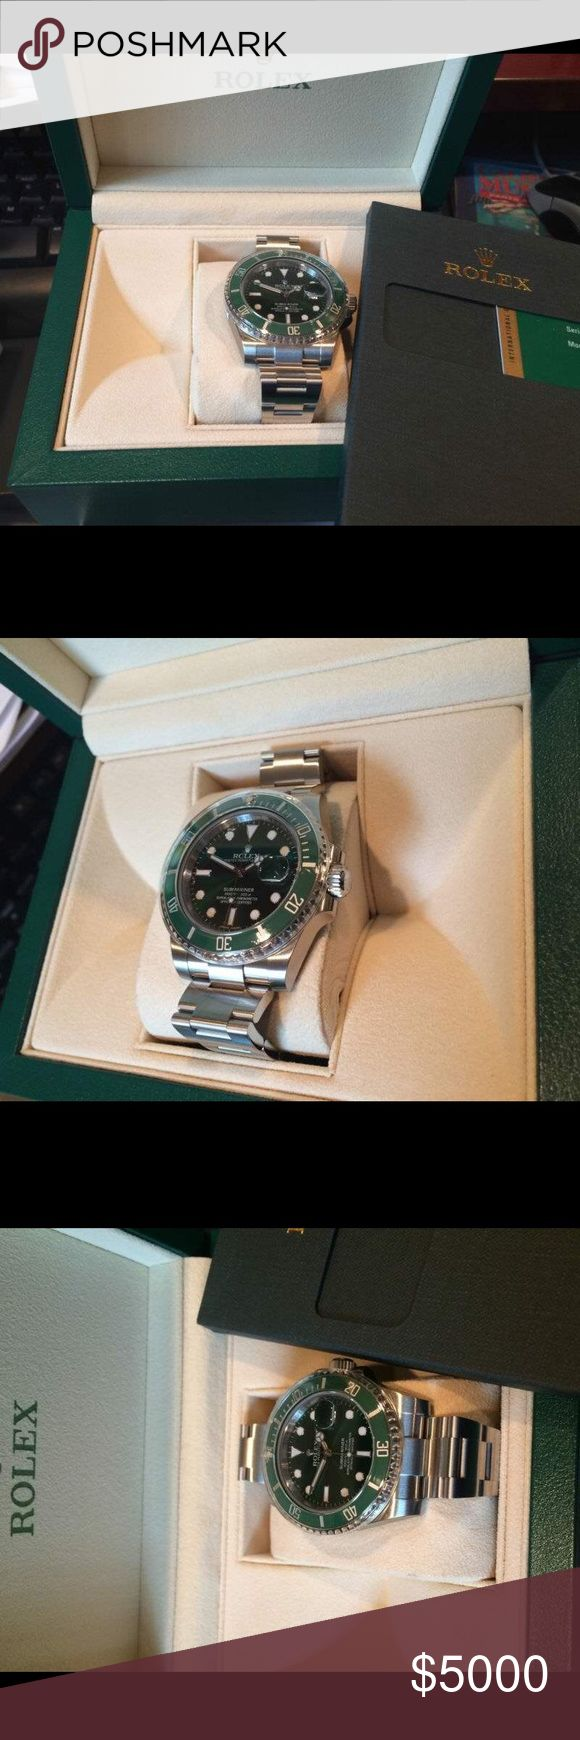 Rolex NIB 116610LV 40MM SS Submariner Date Green (214)617-4883. 40MM Rolex 116610 Reference Submariner Date. It is stainless steel and comes on a genuine oyster flip-lock band. The original warranty papers and box are included. Newest mixed serial number. The dial is original, green gold with raised hour markers. The quickset movement is running well. Don't pass up the opportunity to purchase this desirable wristwatch. Overall condition is unworn with plastic seals in tact. FED EX 2-3 day…